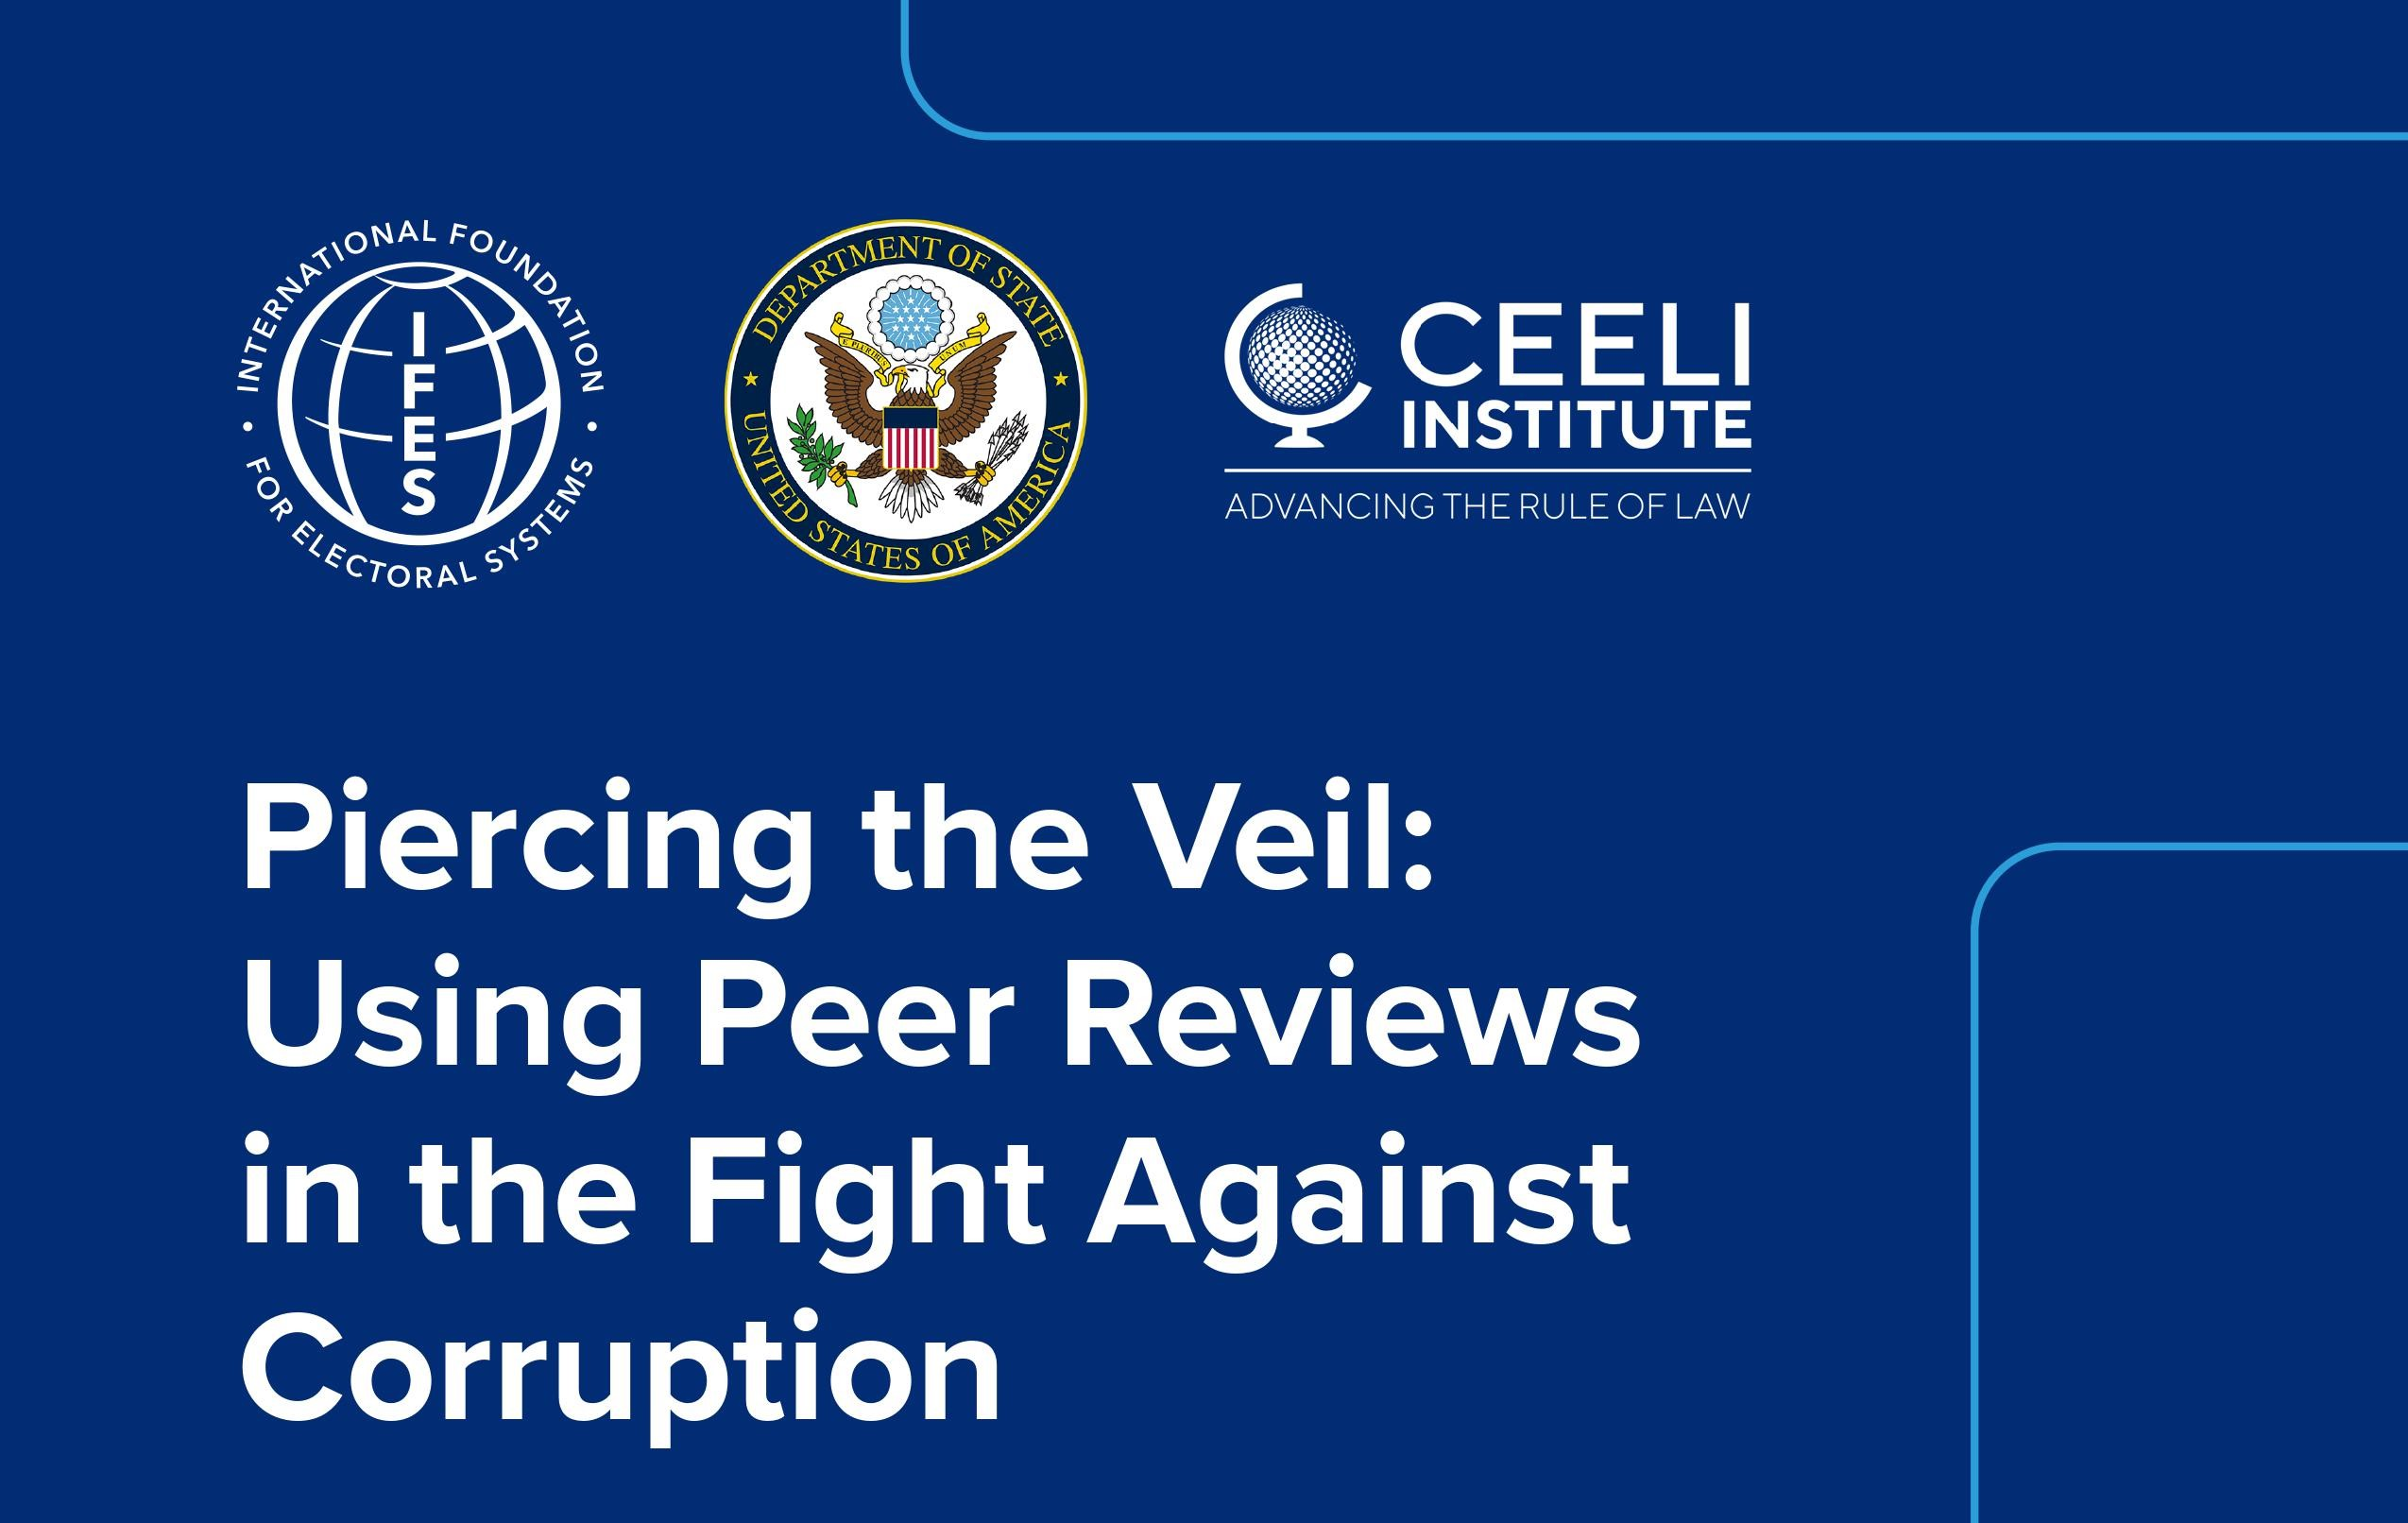 CEELI joins with IFES in Producing New Anti-Corruption Tools